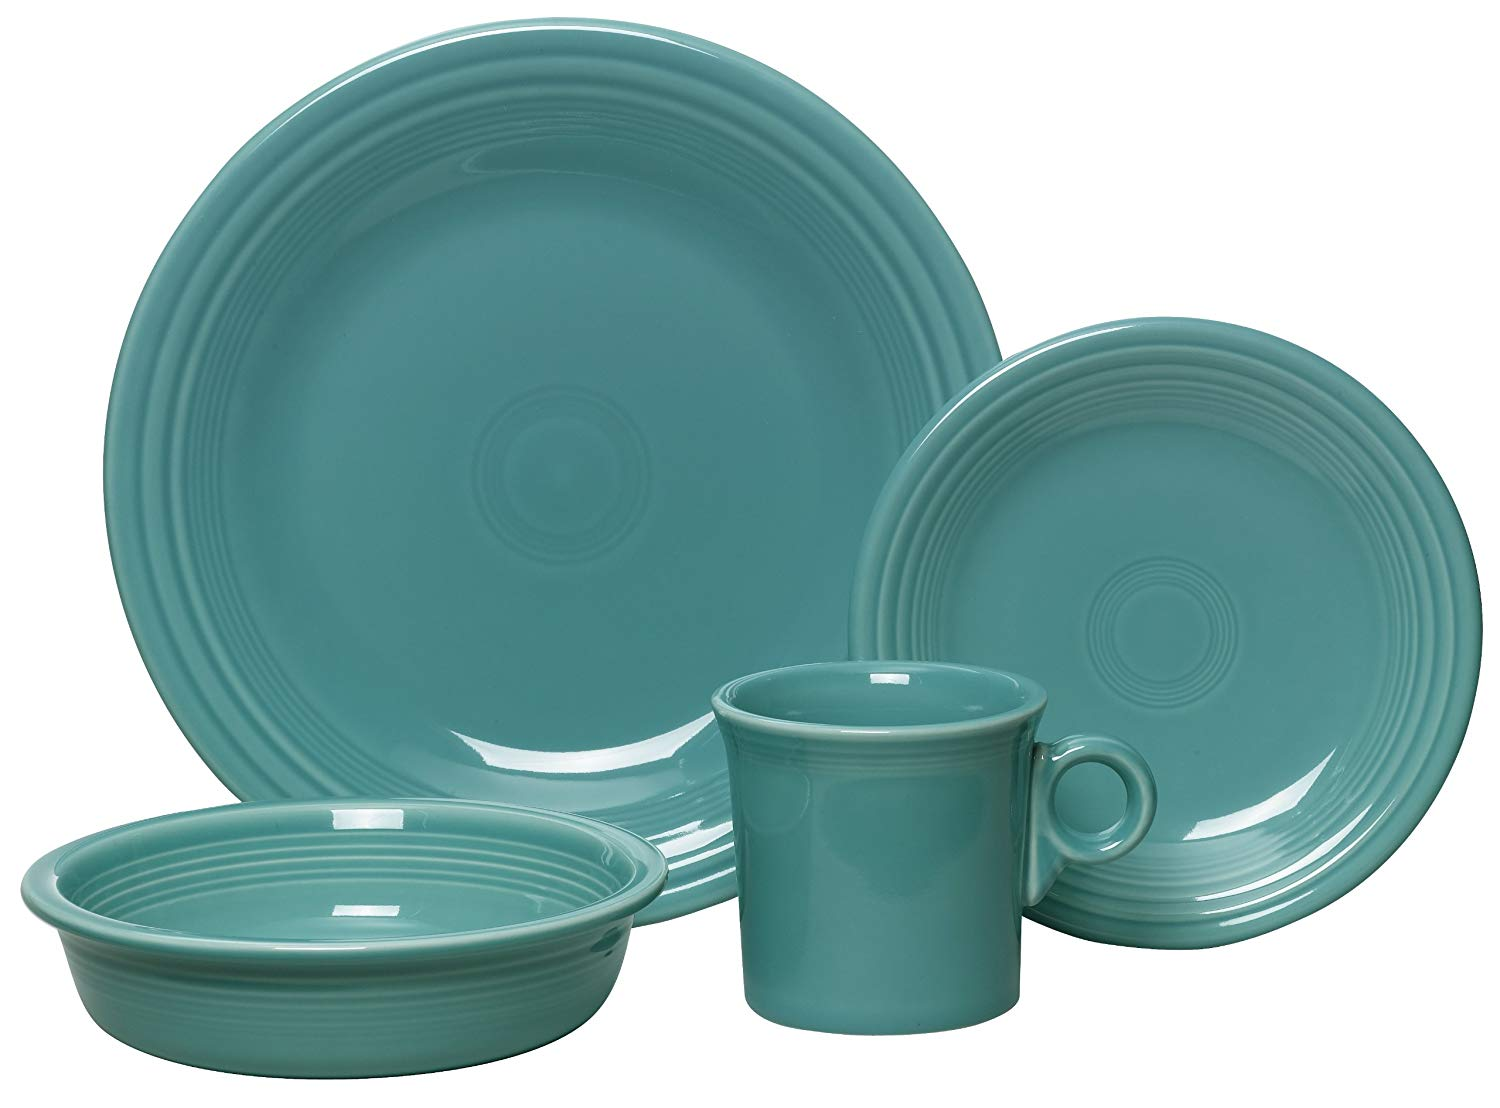 Fiesta 4-Piece Dinnerware Place Setting-Turquoise